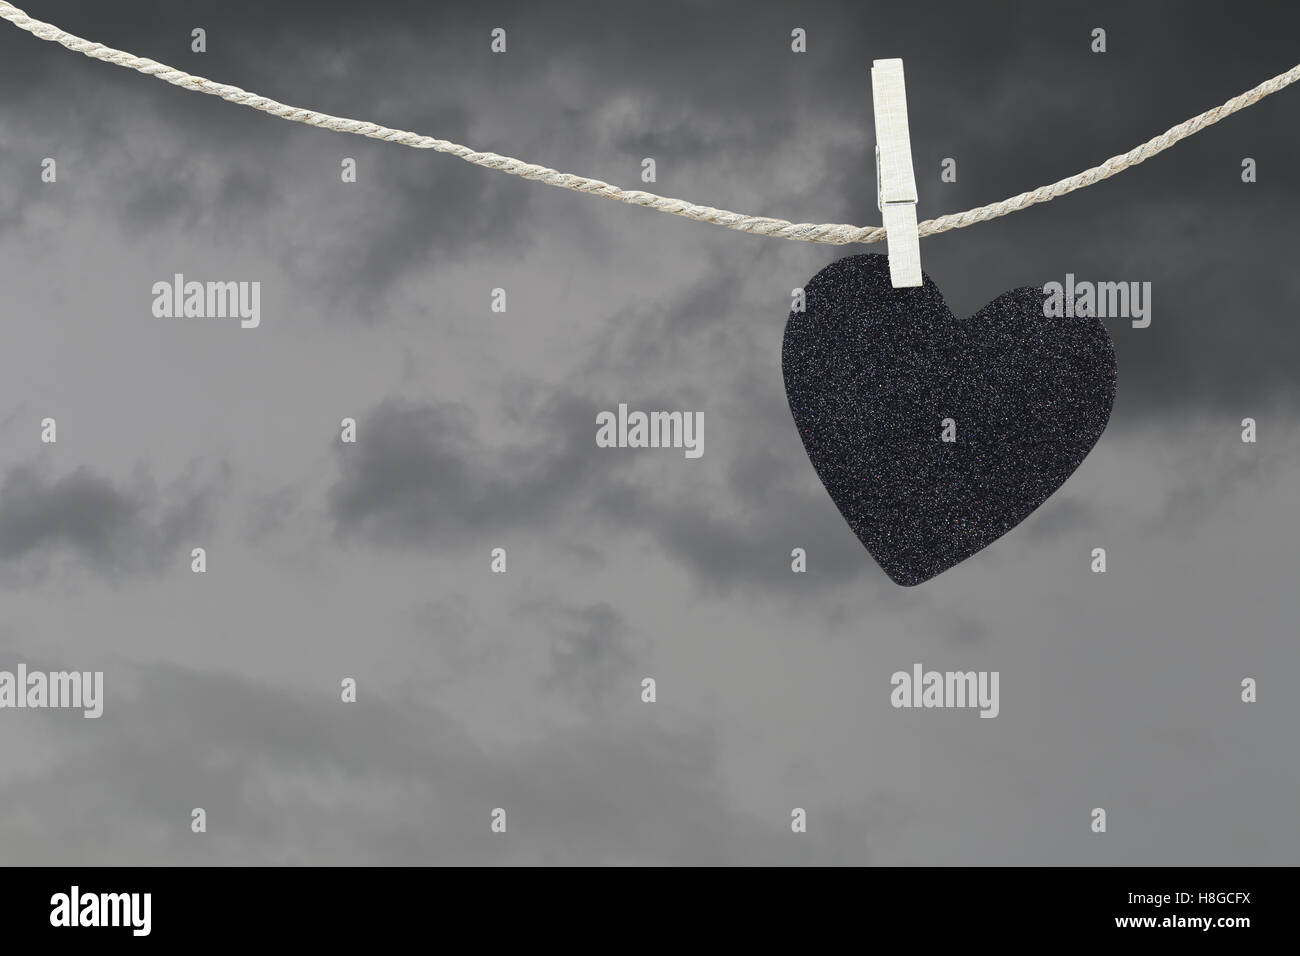 Black Heart paper hanging on a brown hemp rope on rain clouds background,Concepts about unrequited love and heartbreak. - Stock Image